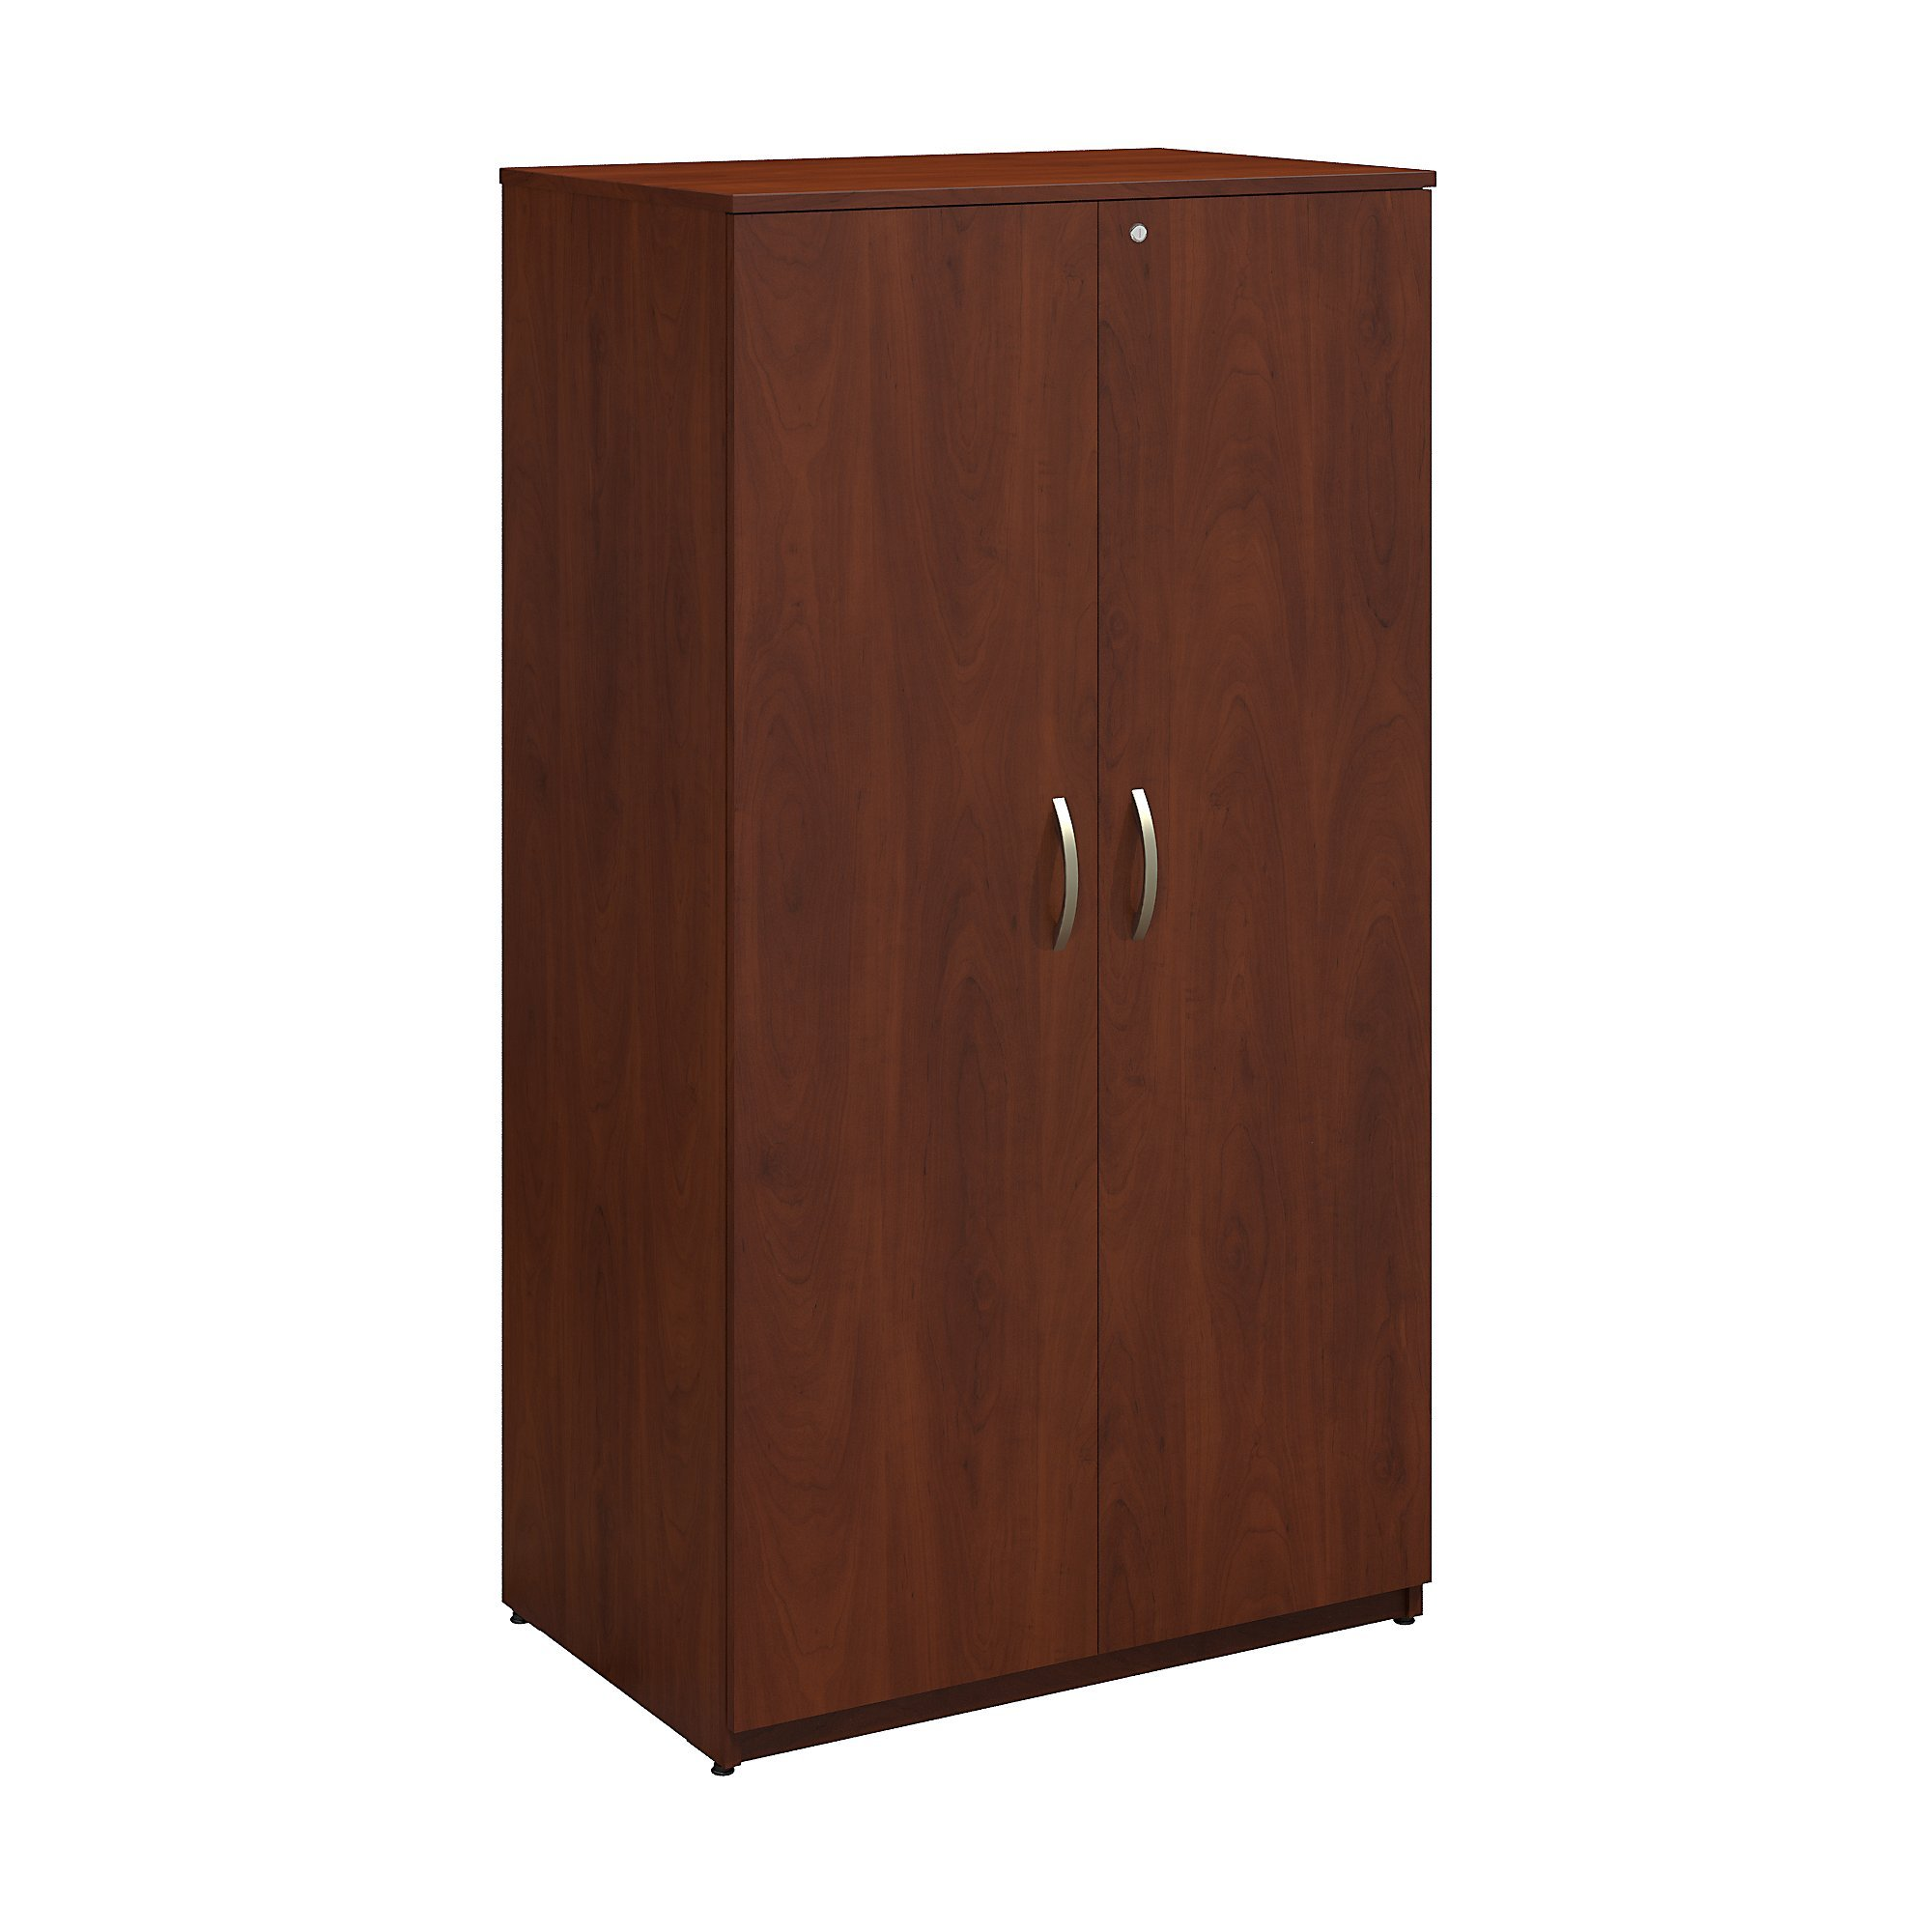 Bush Business Furniture Series C Elite 36W Storage Wardrobe Tower in Hansen Cherry